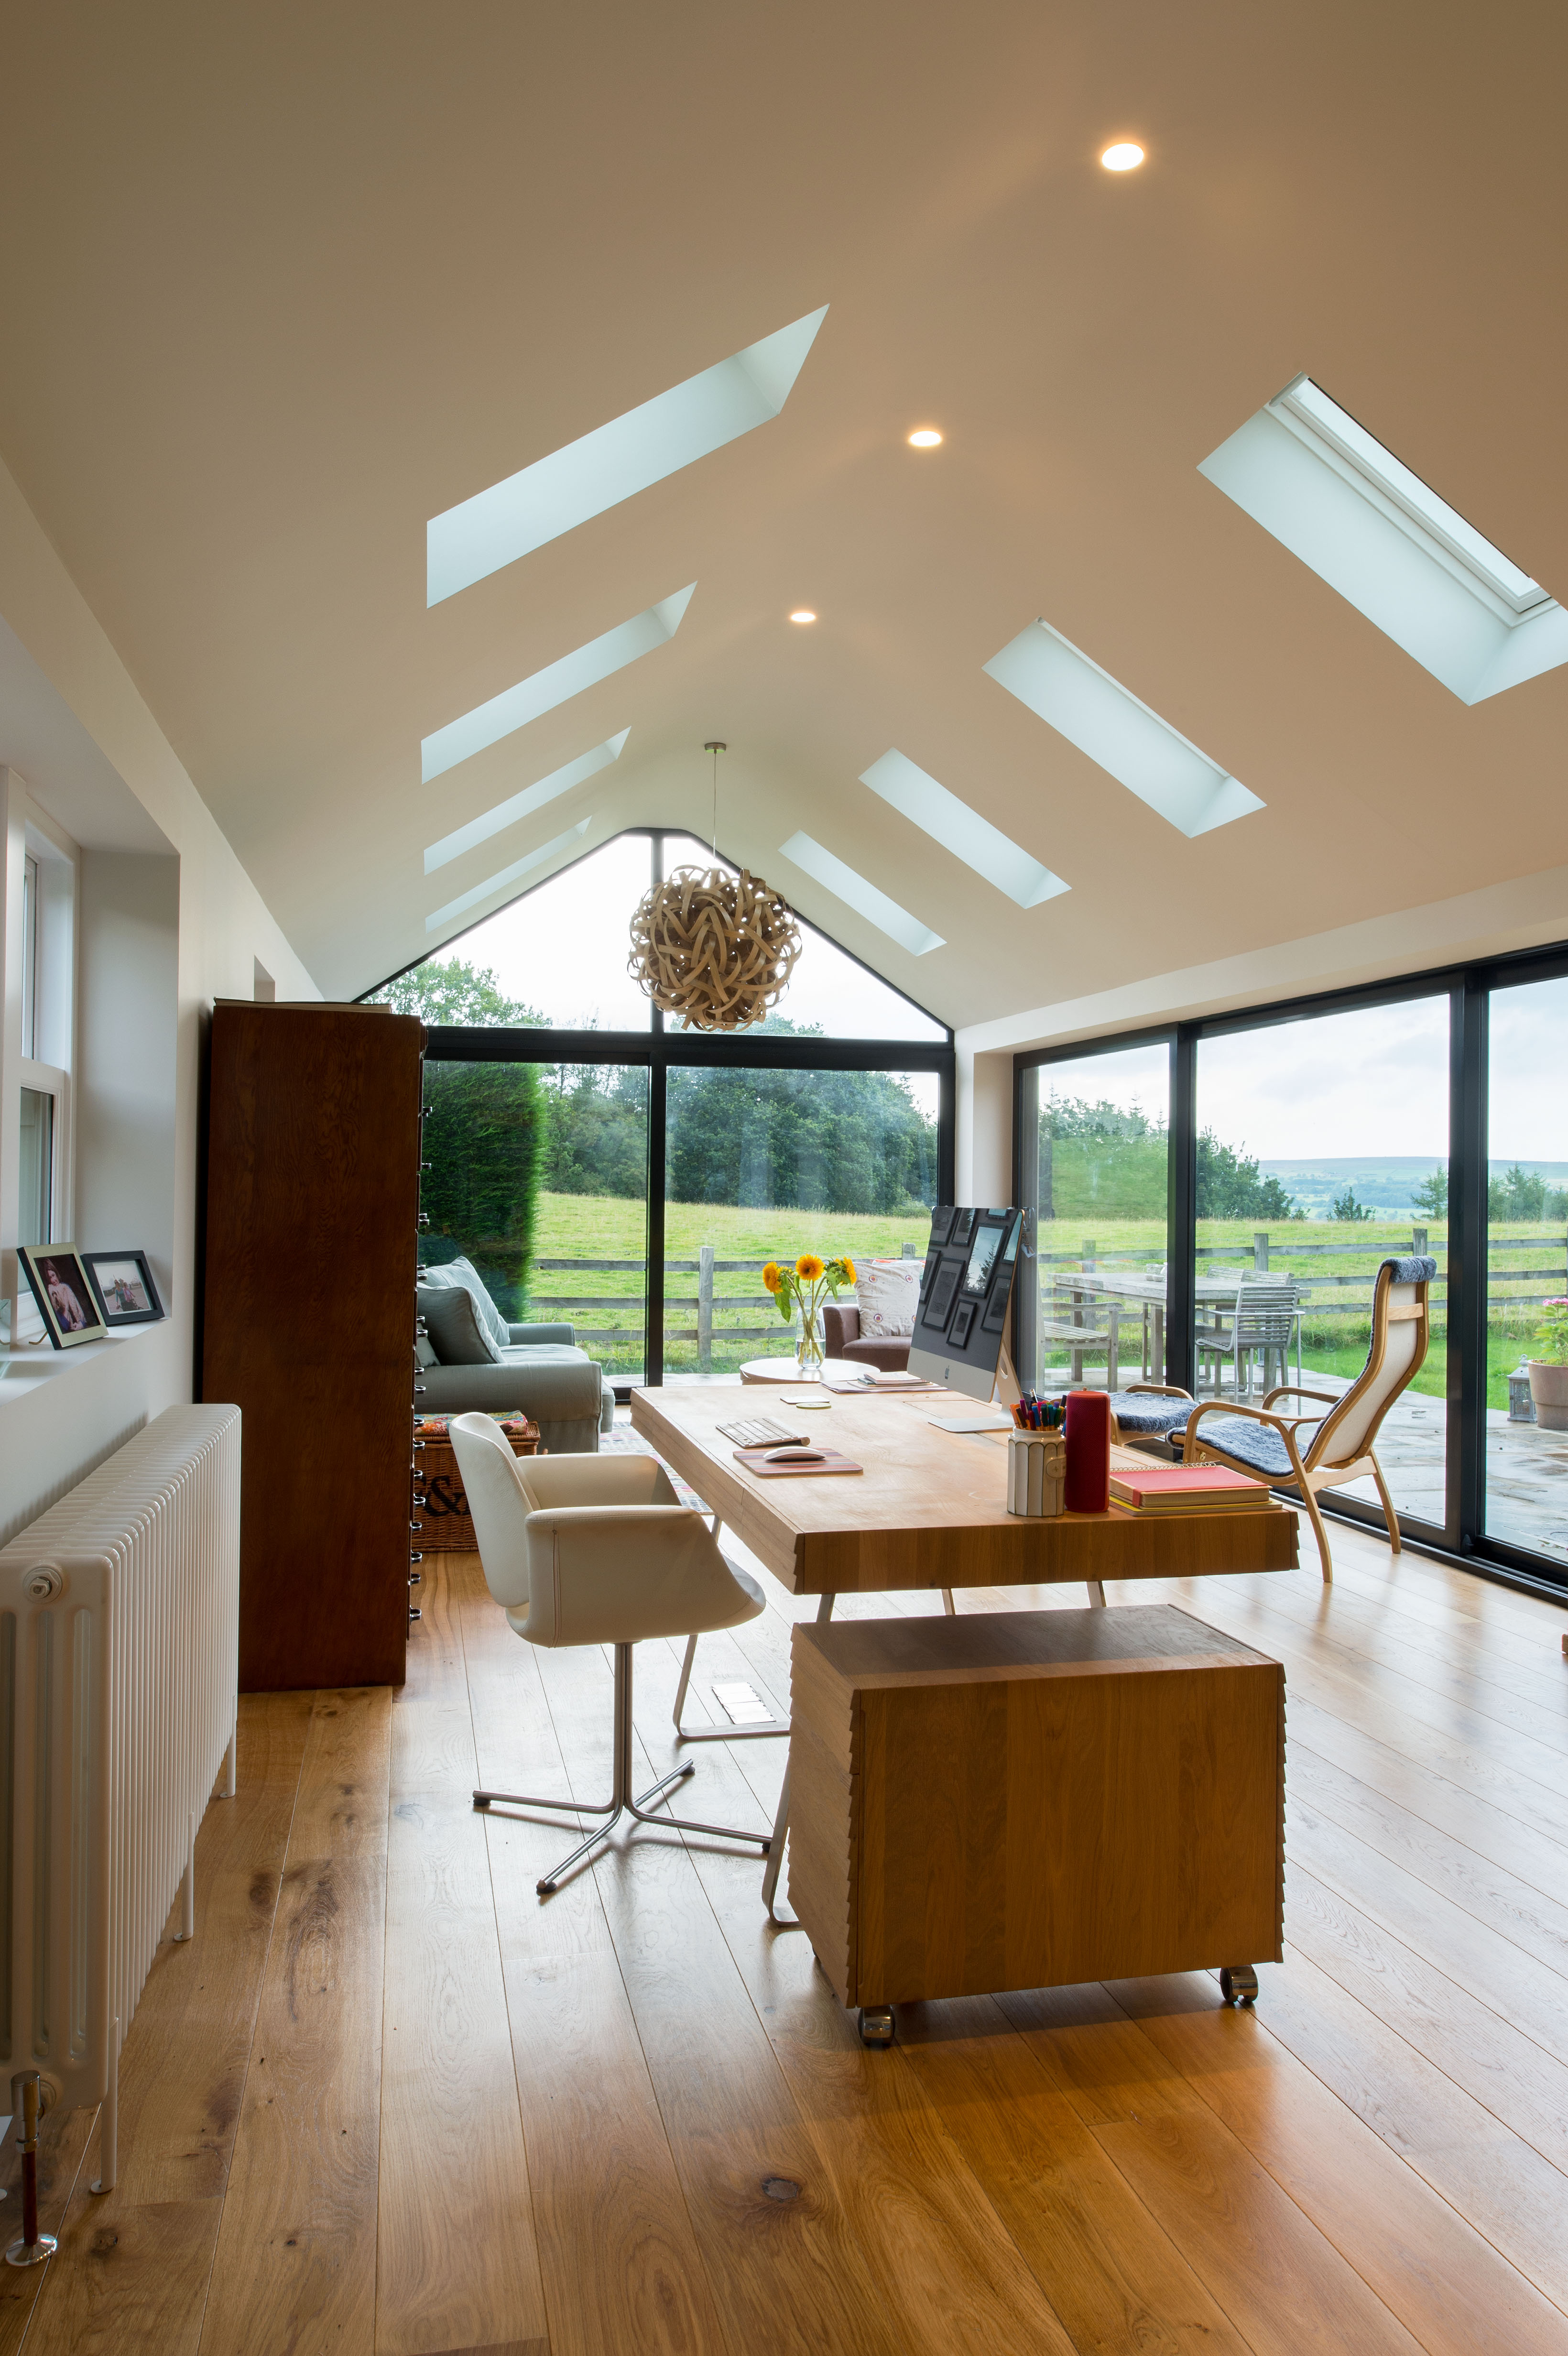 Design house yorkshire - Our Client Says When I Asked Niche Design To Work On A Partial Rebuild And Extension For My 300 Year Old House I Was Looking To Create A Room That